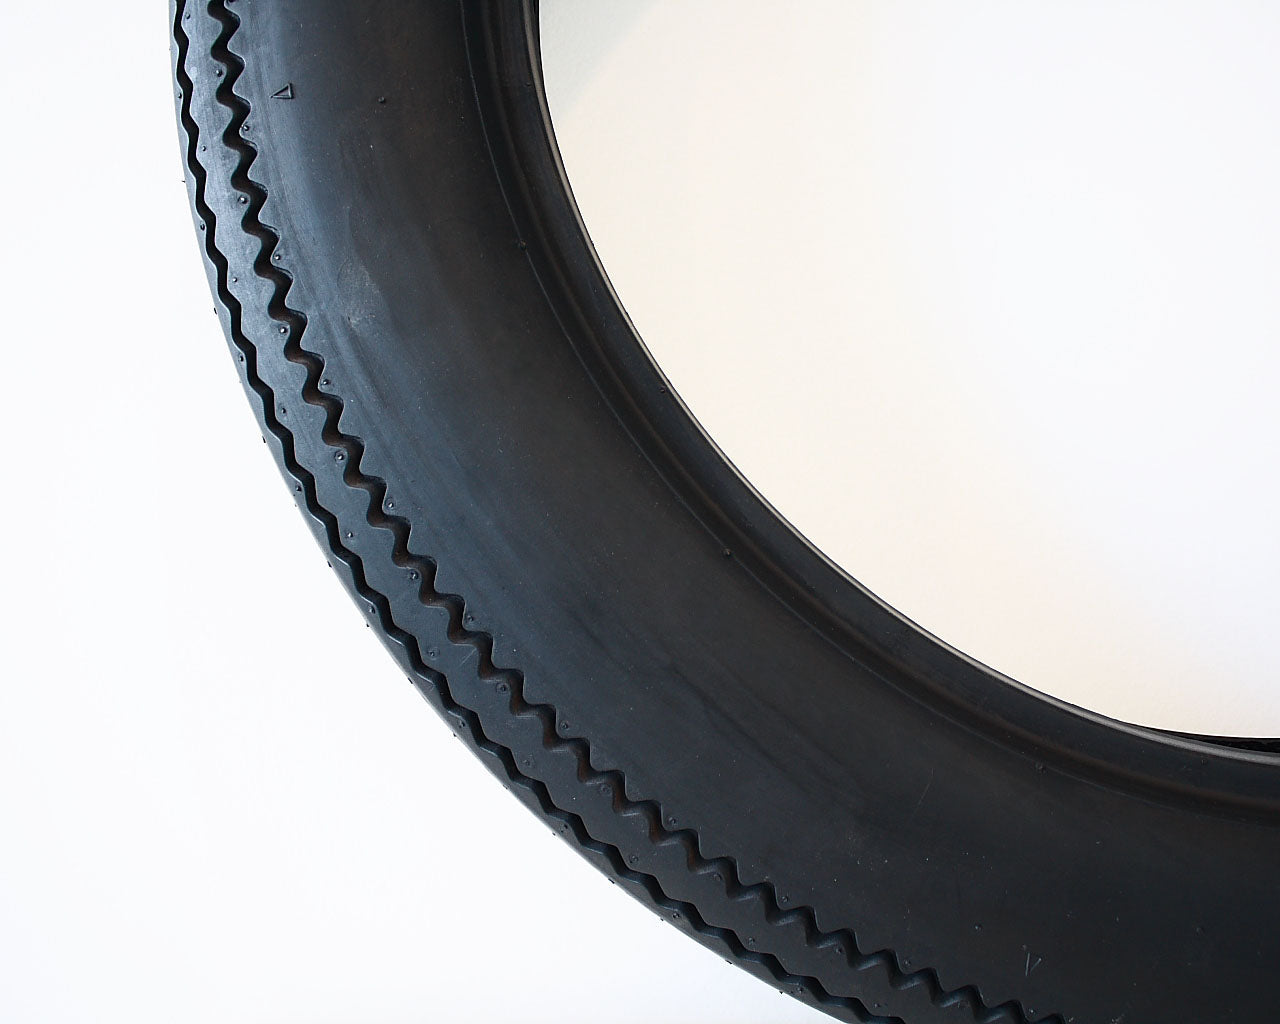 Tyre, Deluxe Champion Replica, 400-18